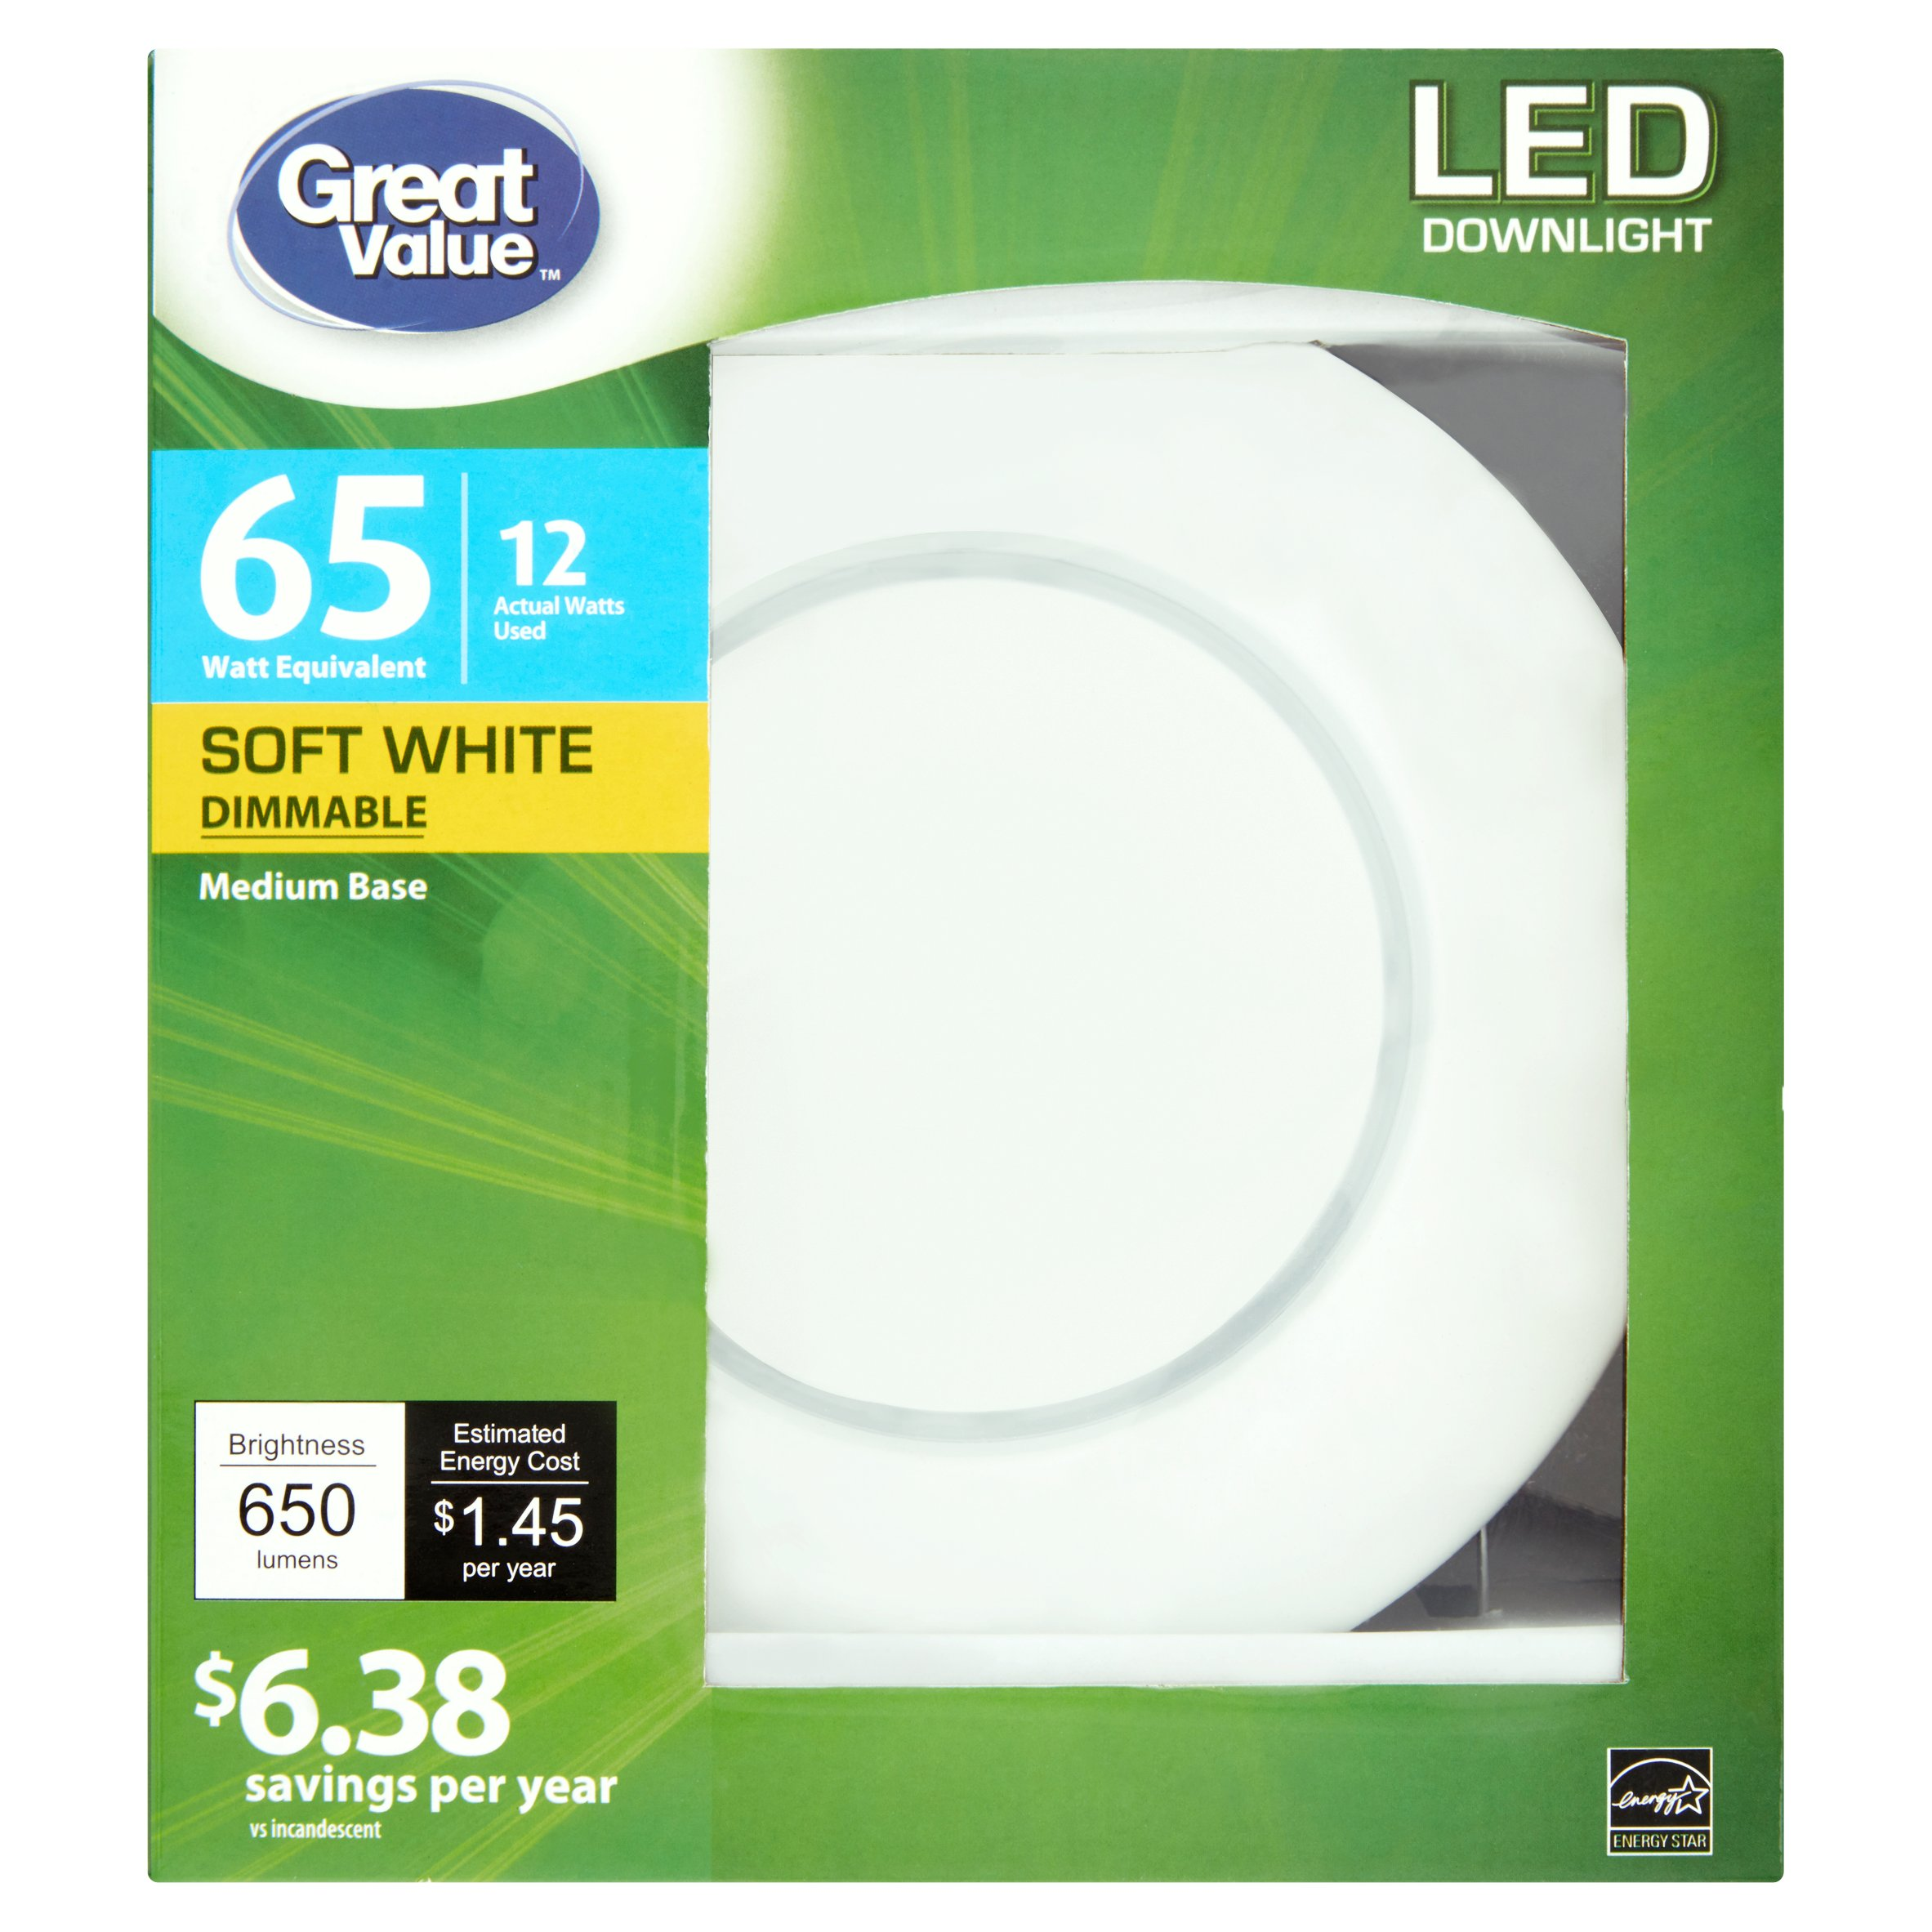 Great Value LED Dimmable Downlight (E26) Light Bulb, 12W (65W Equivalent), Soft White